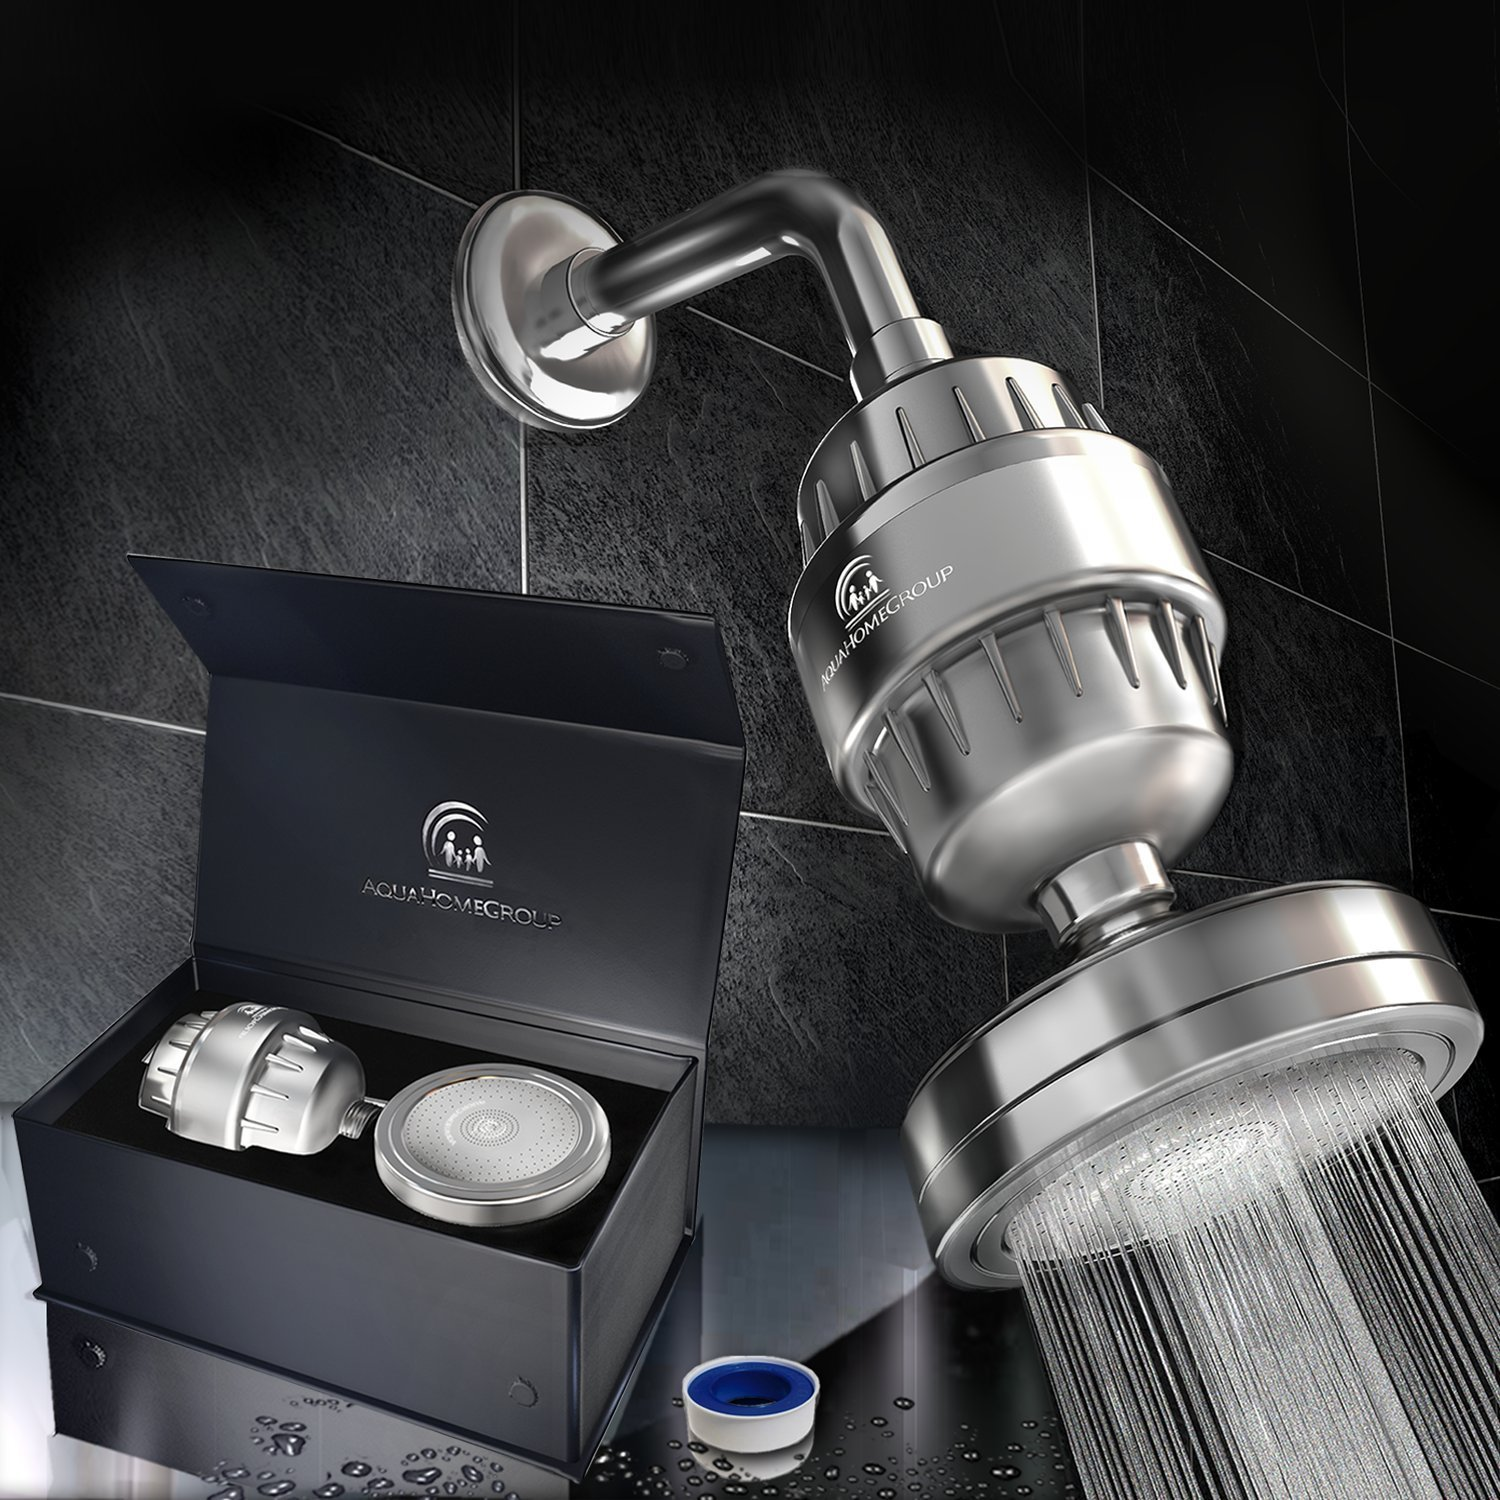 AquaHomeGroup Luxury Filtered Shower Head - Equipped with Vitamin C &E Cartridge, Reduces Chlorine & Sediments, Consistent Water Pressure